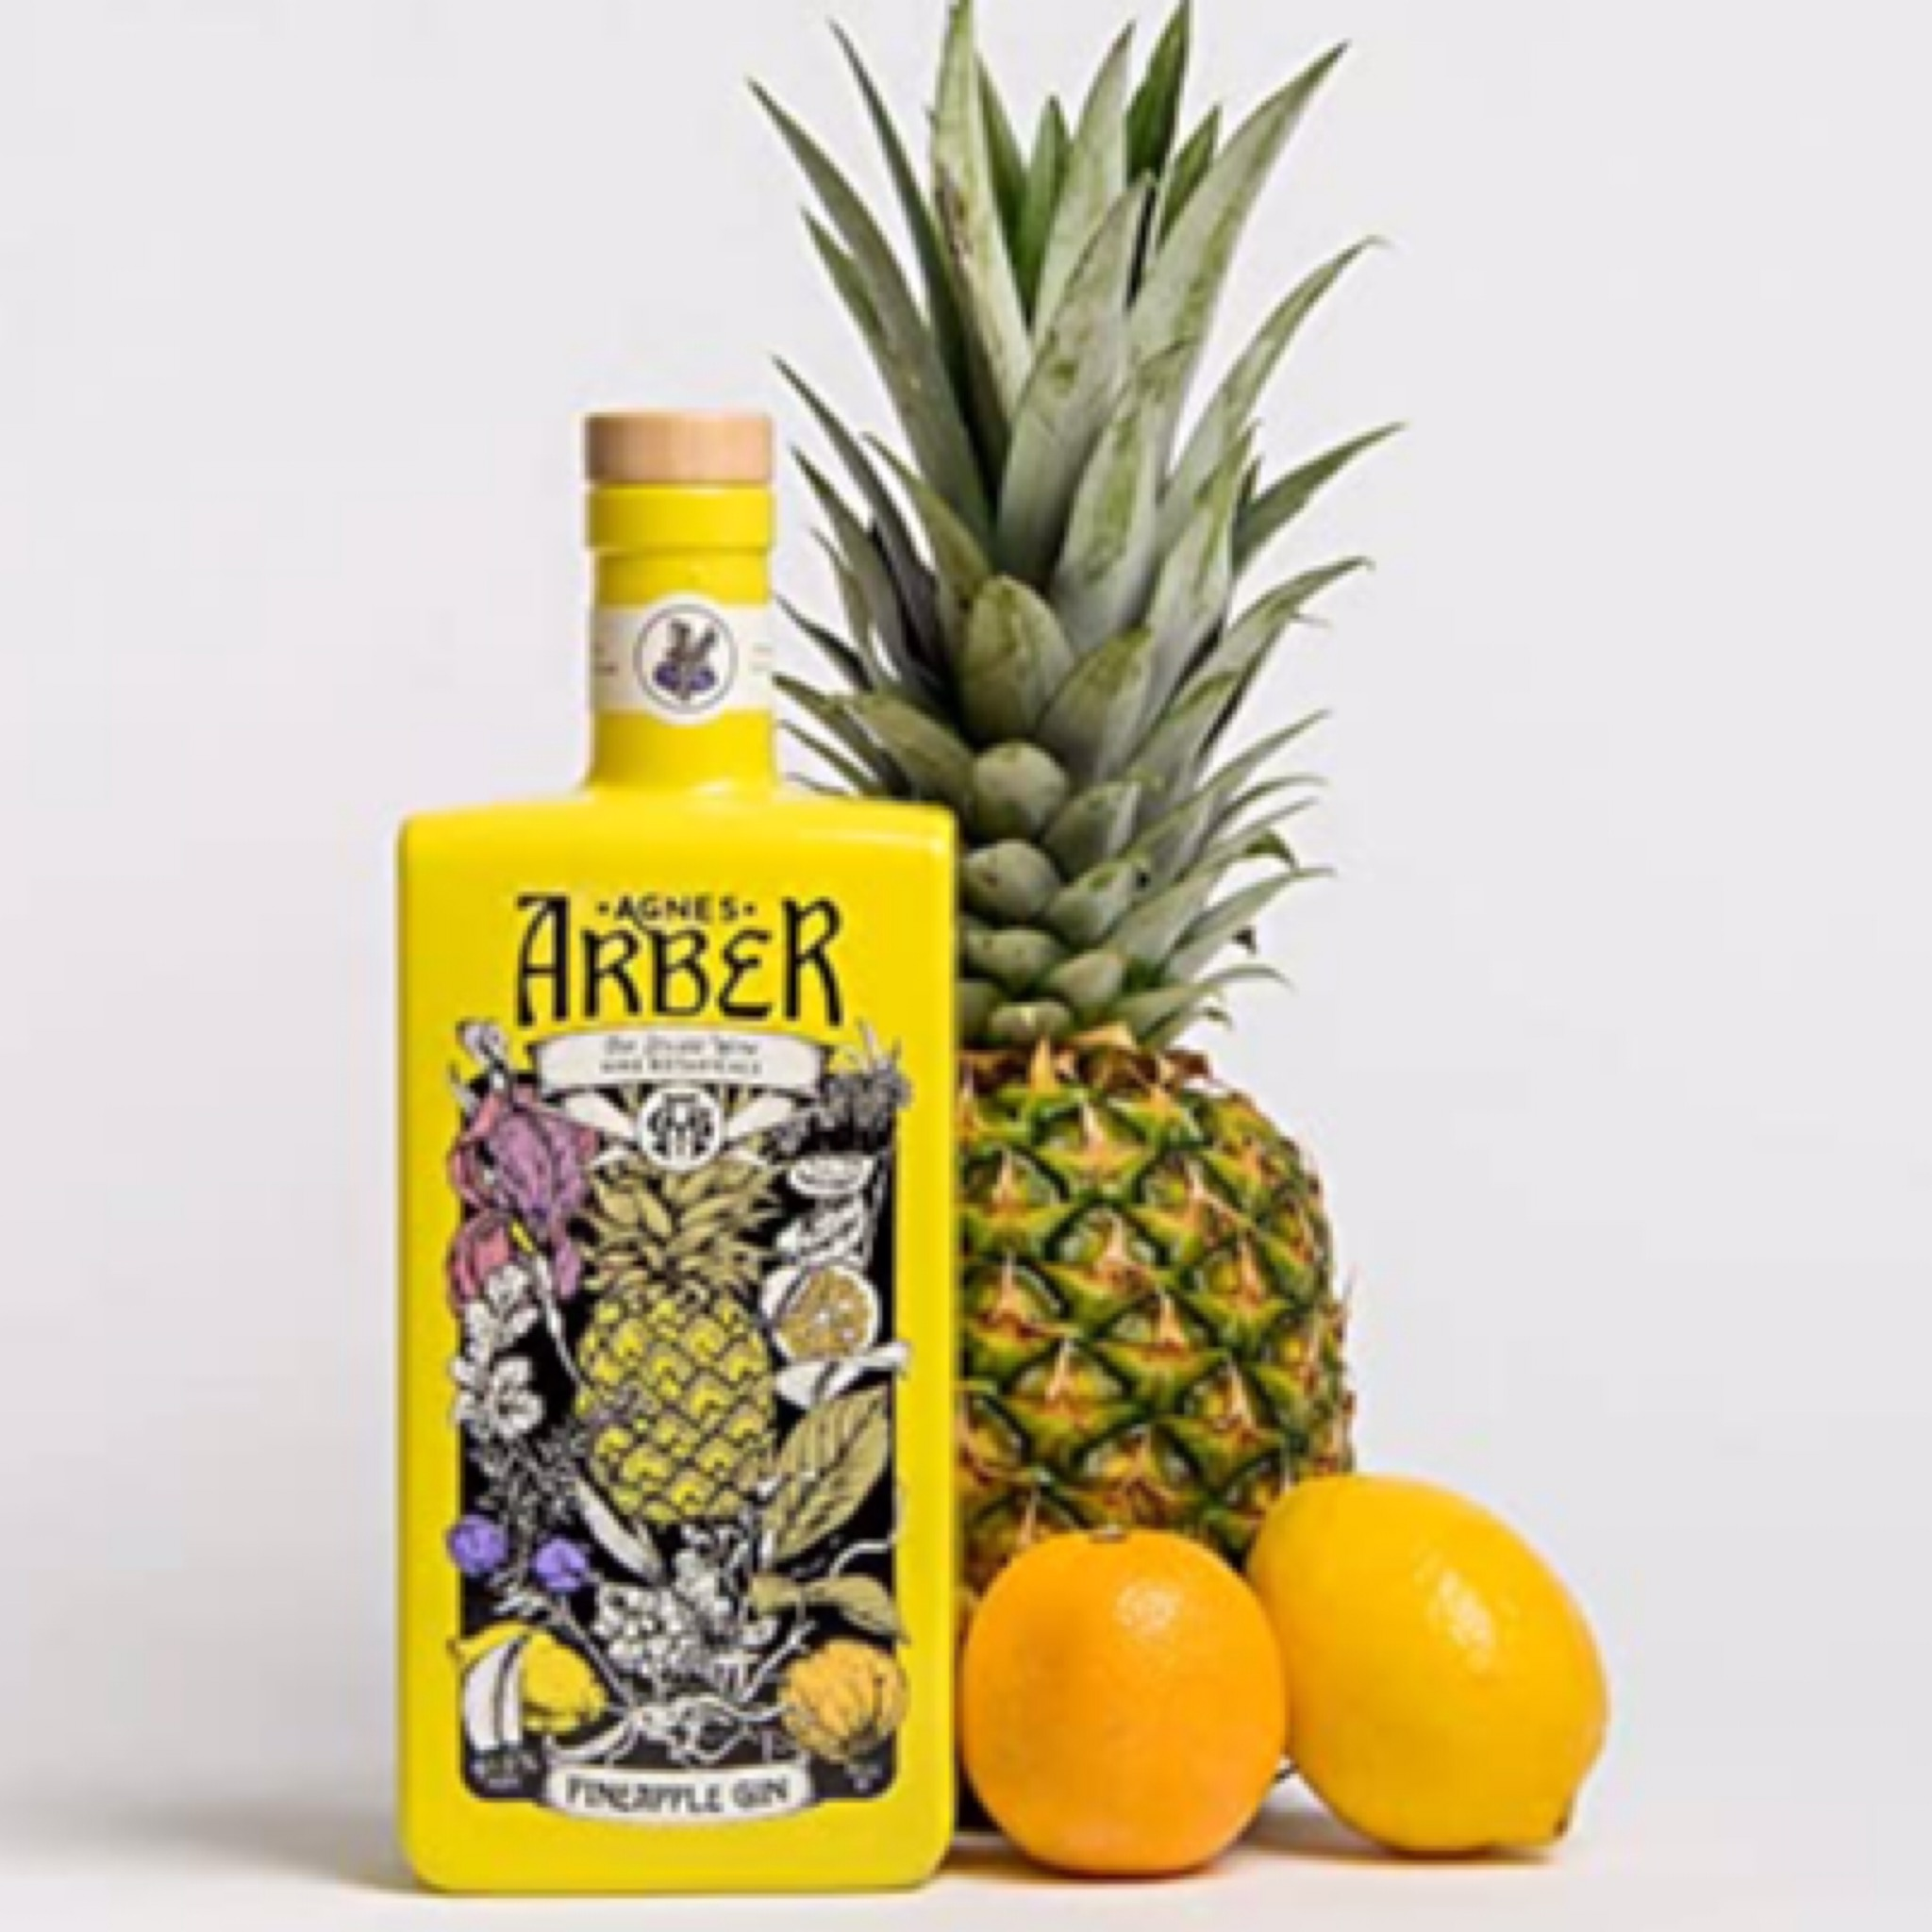 Agnes Arber Pineapple Gin 41.6% 700ml